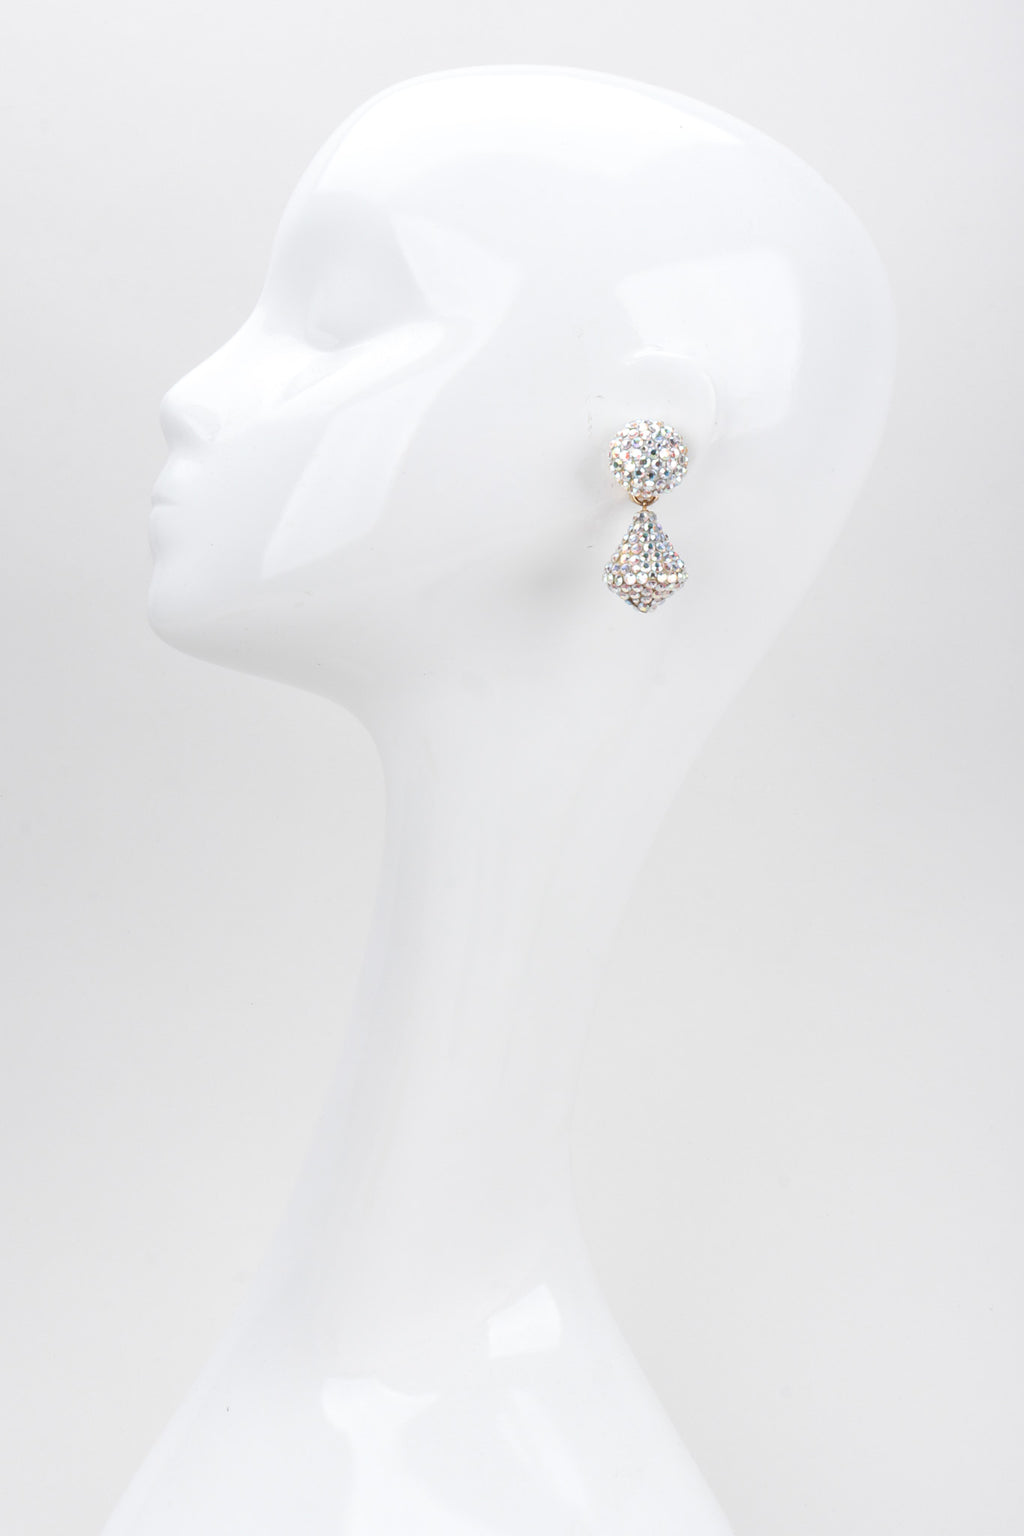 Recess Los Angeles Vintage Richard Kerr Swarovski AB Aurora Borealis Crystal Kiss Drop Earrings